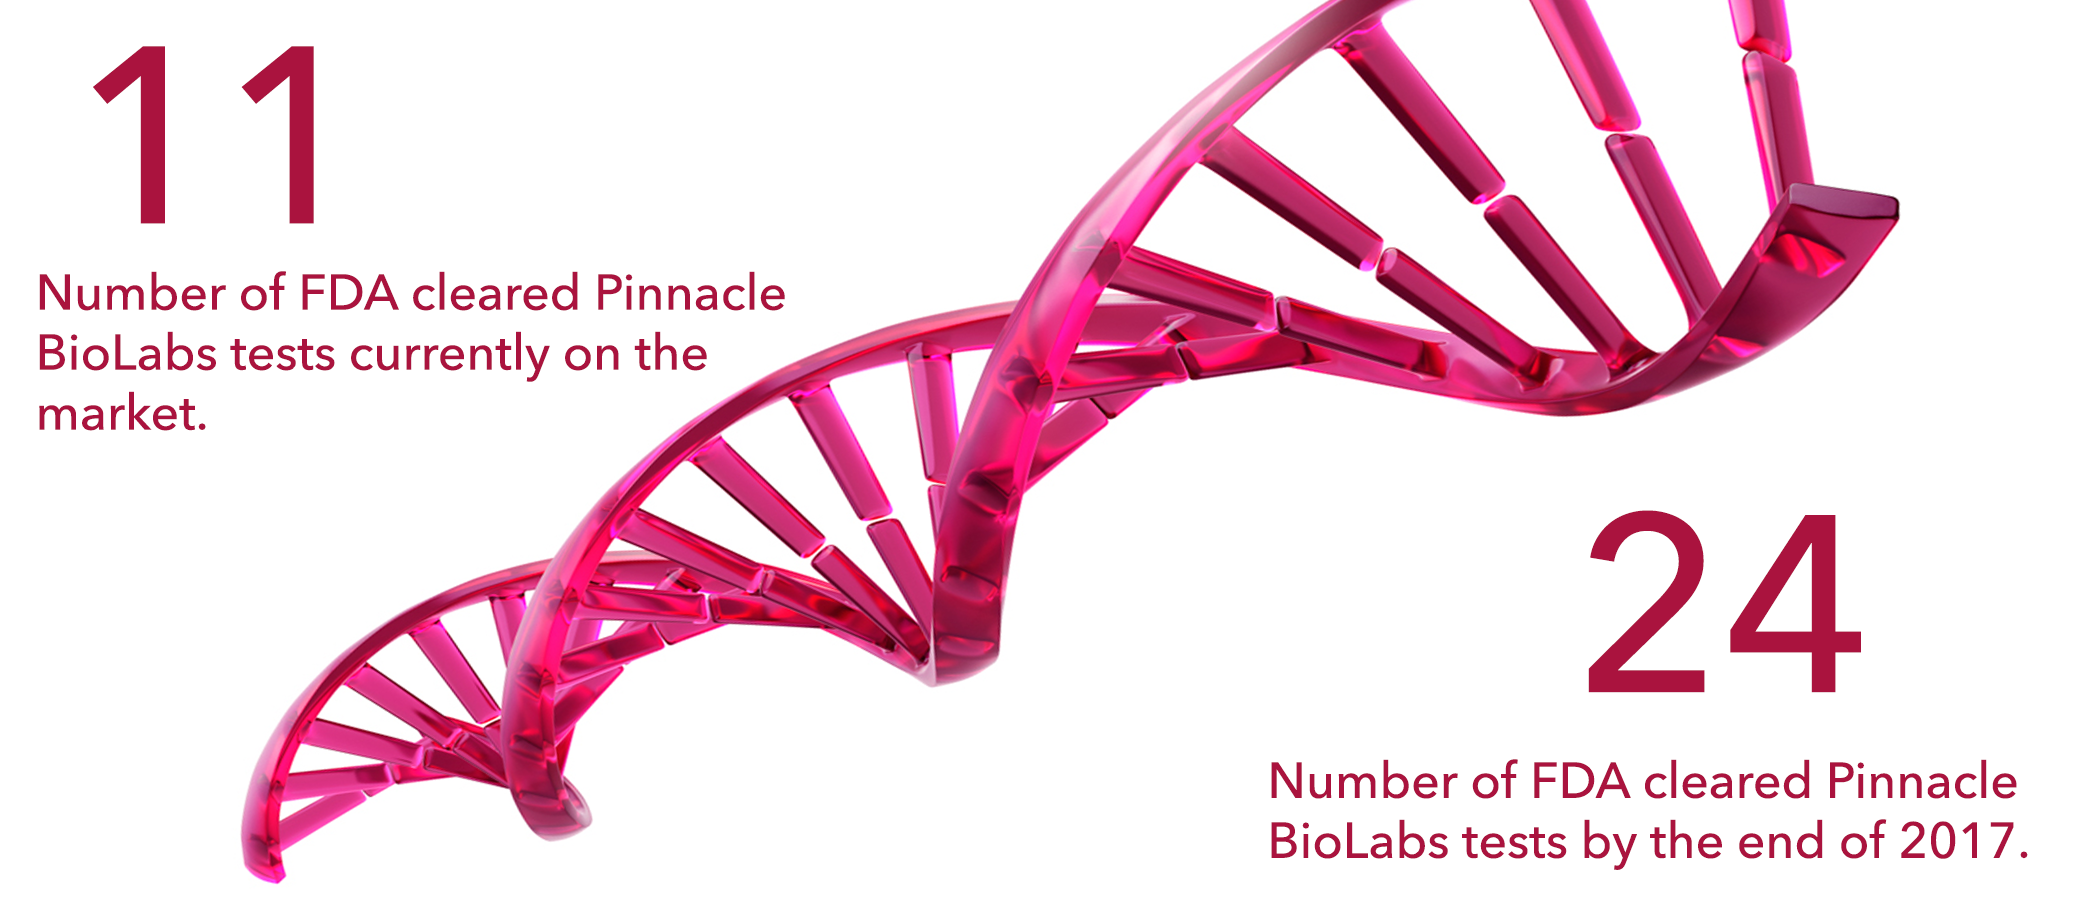 FDA cleared tests by Pinnacle Biolabs